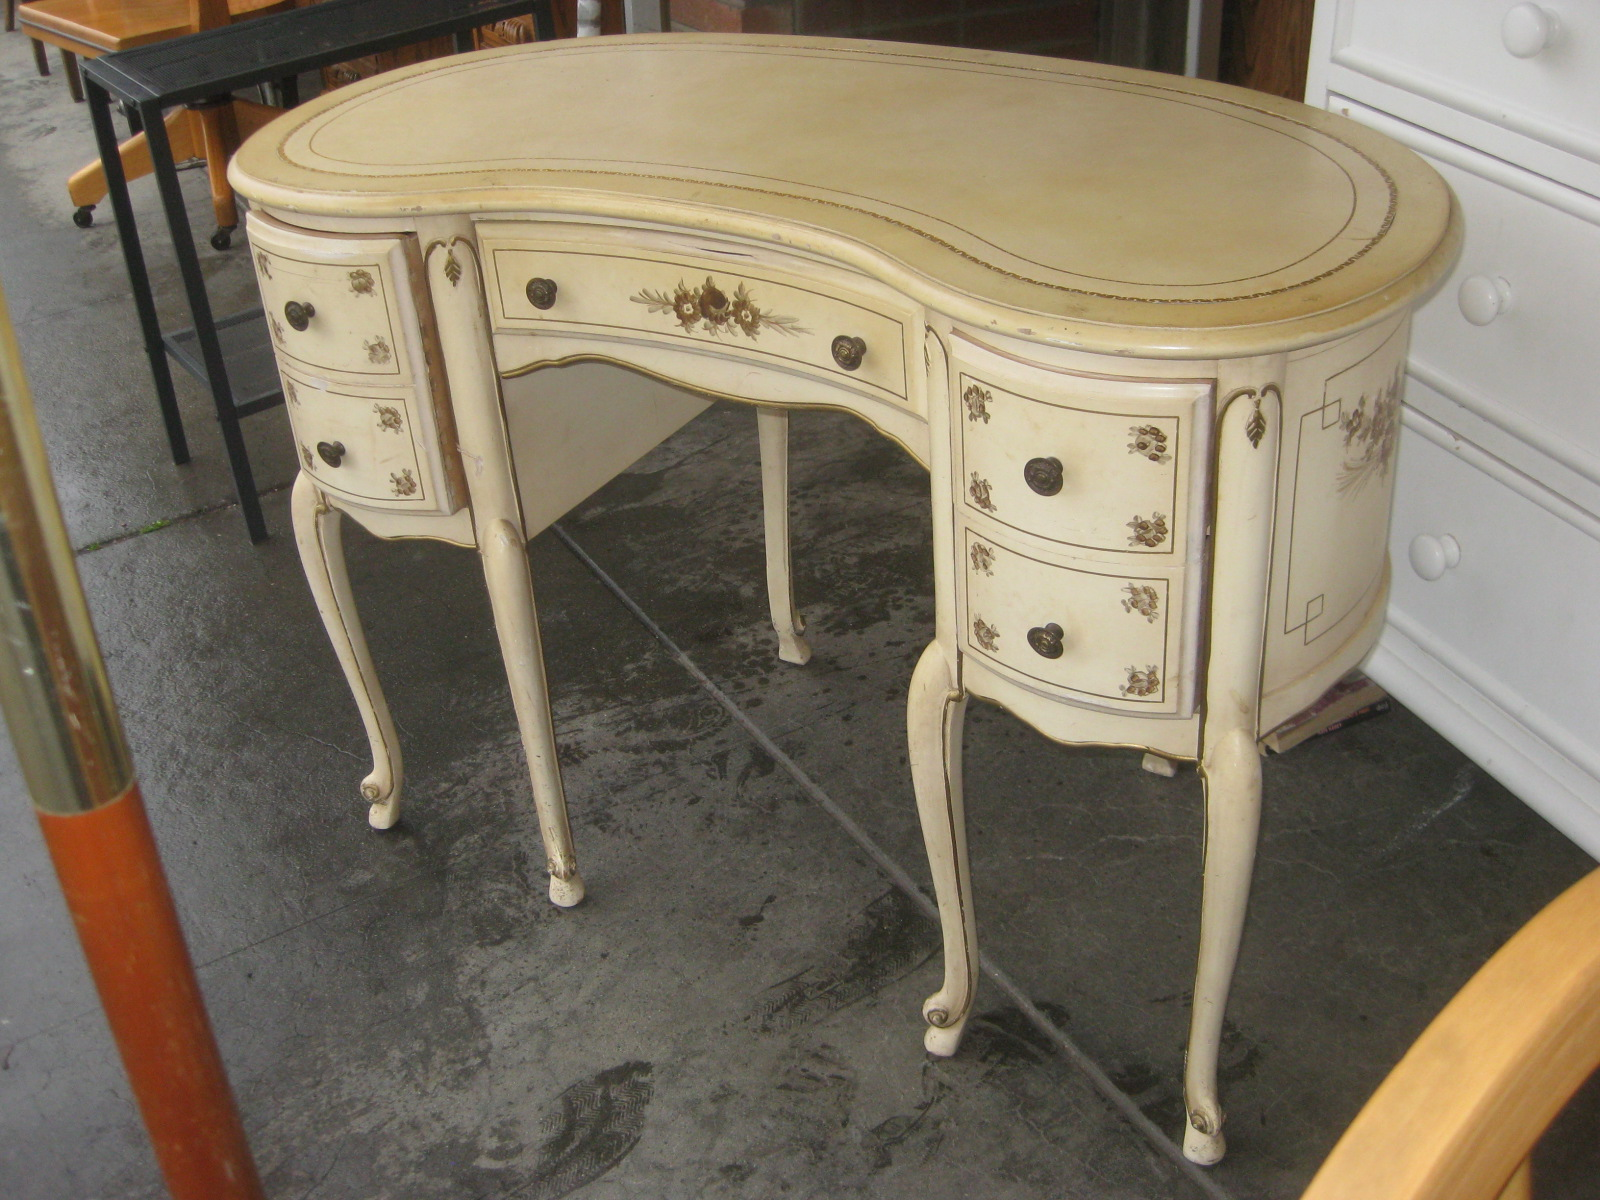 Uhuru furniture collectibles sold kidney shaped desk for Kidney desk for sale